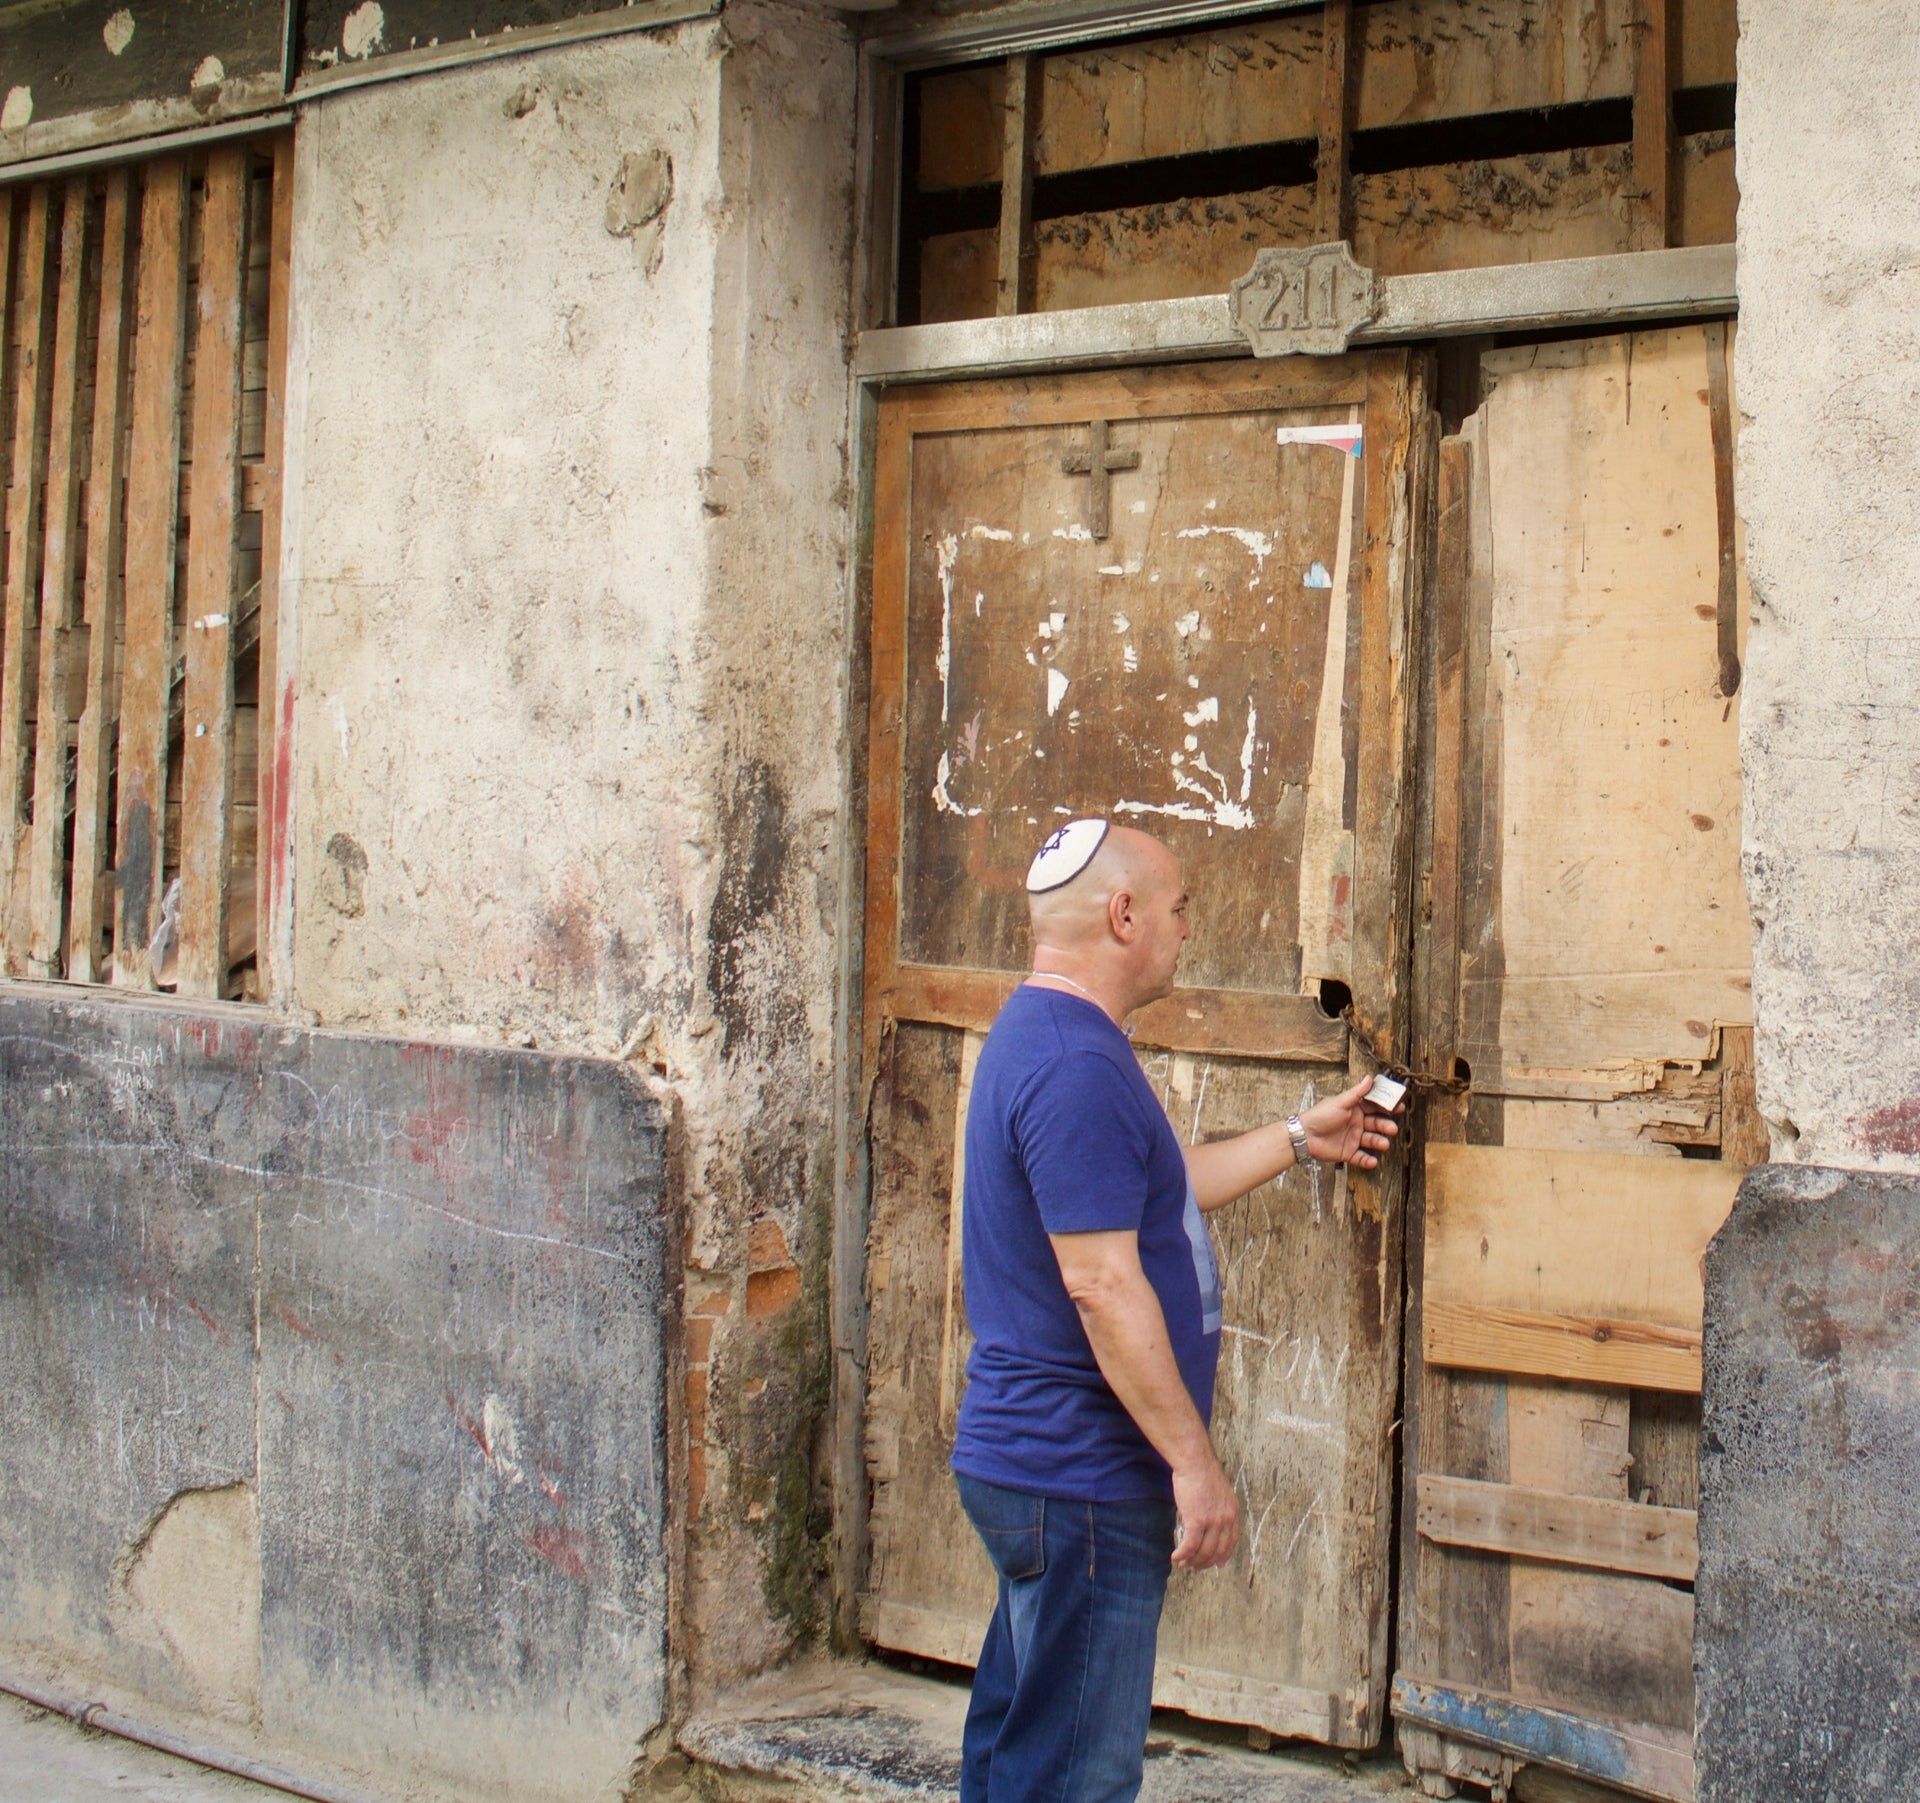 Fidel Babani Leon at the entrance to a former kosher restaurant in Havana.